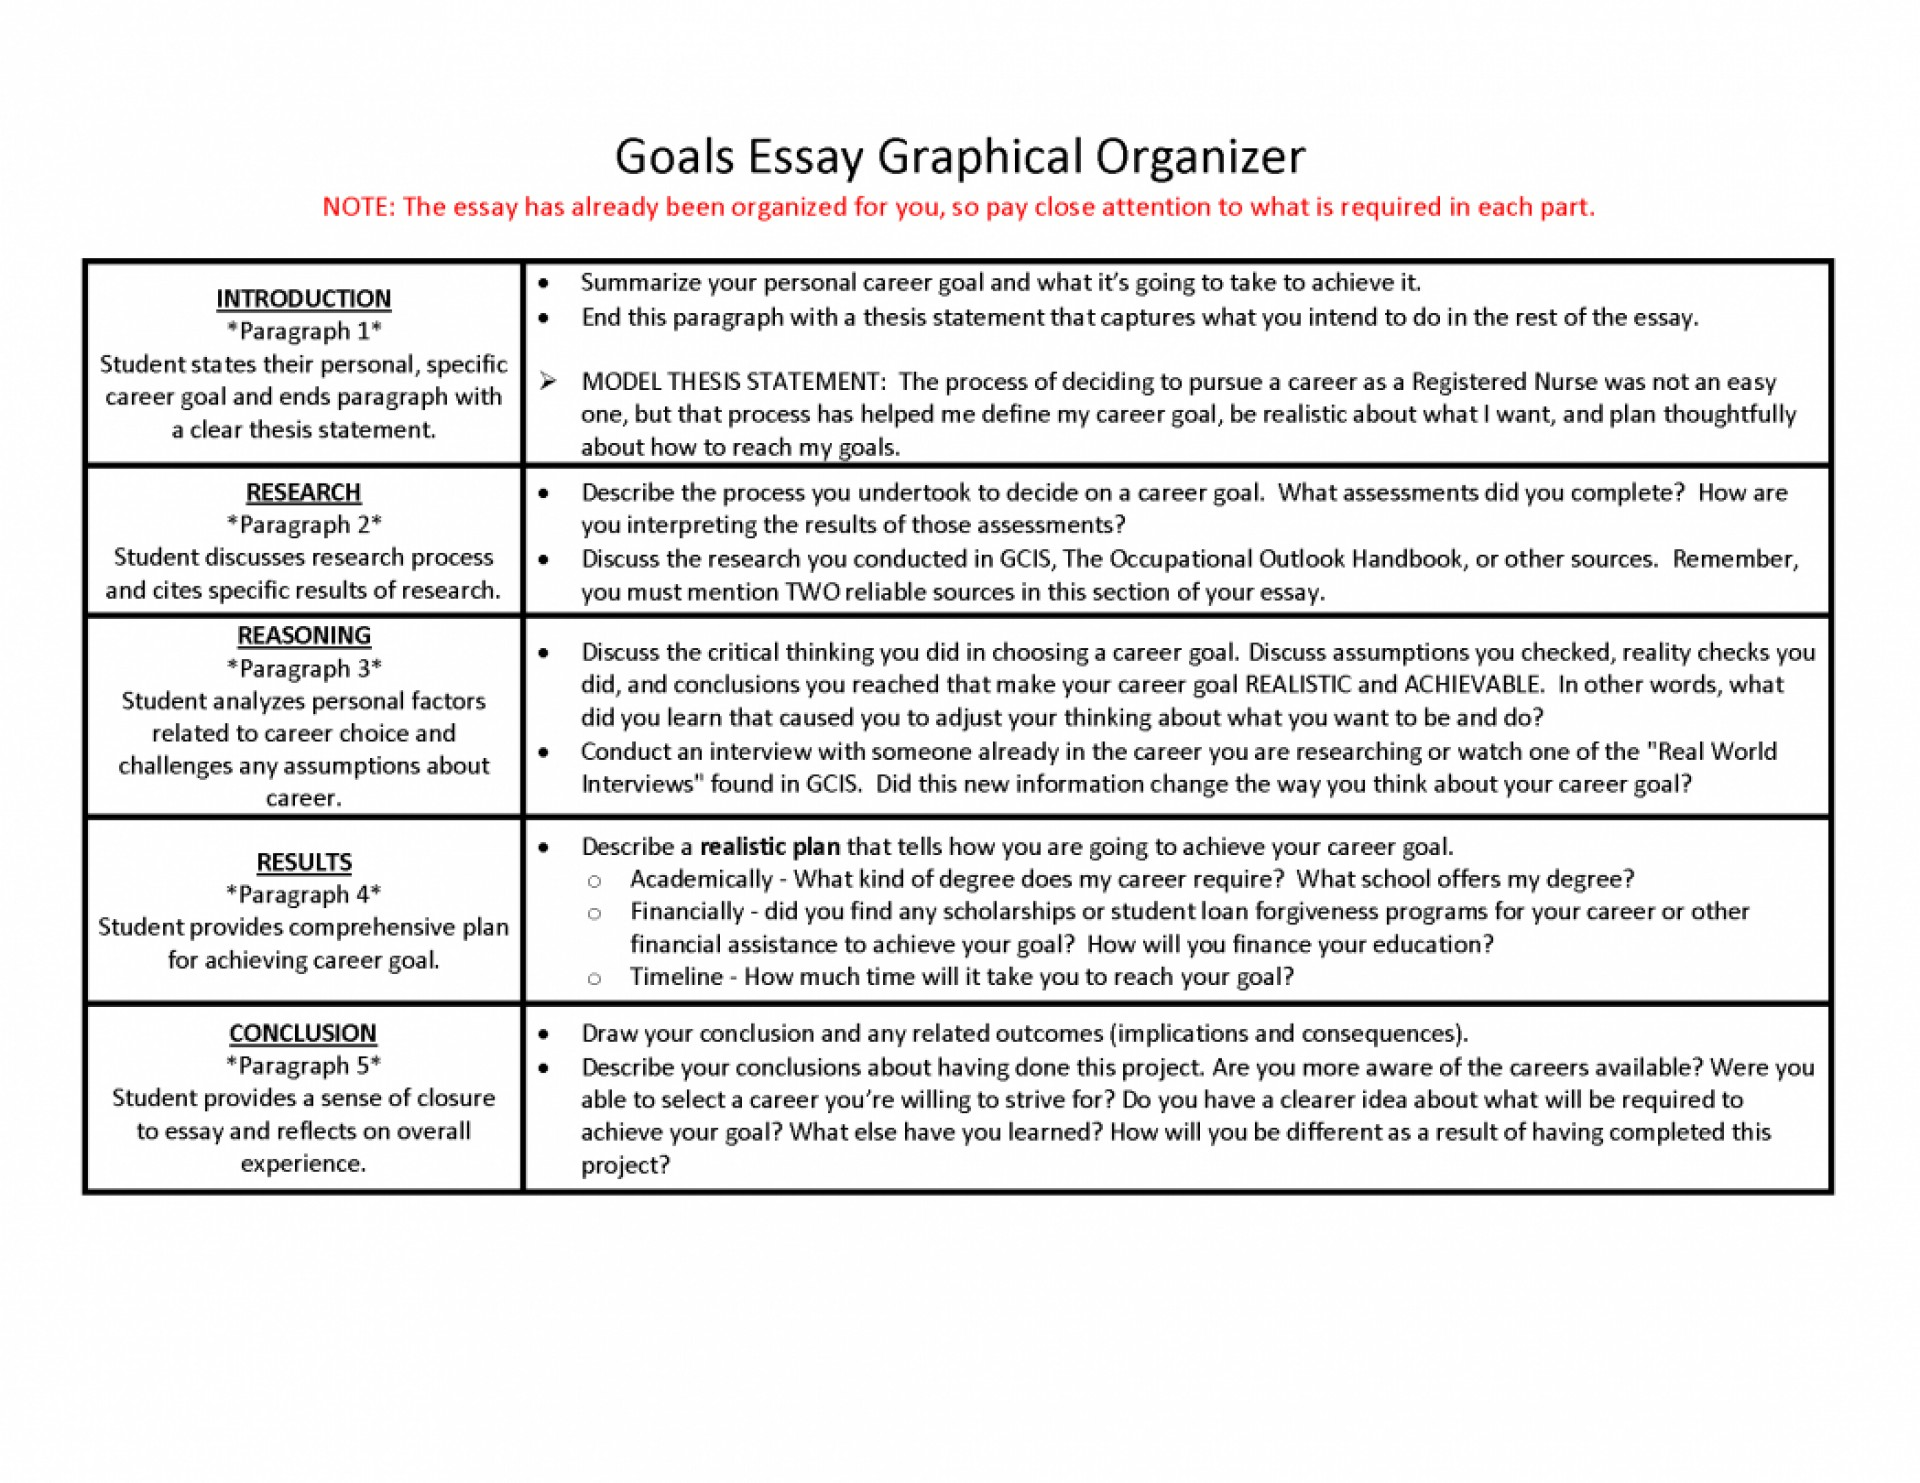 014 My Goal Essay College Goals Template Future Essays Lochhaas How Will Help Me Achieve 1048x810 Shocking Flight Attendant For High School 500 Words 1920